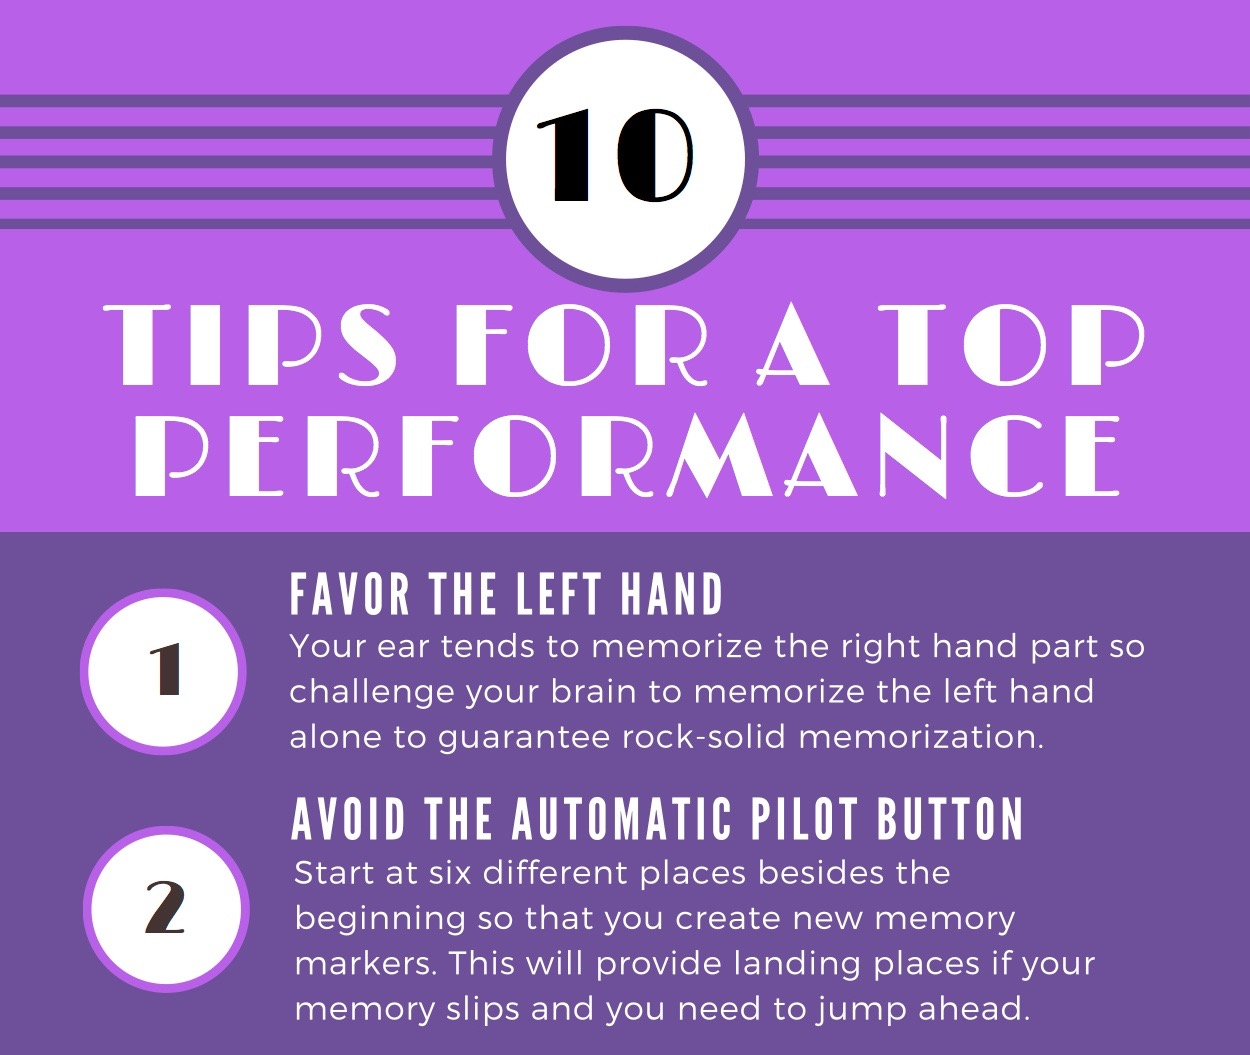 tips-for-top-performance-1